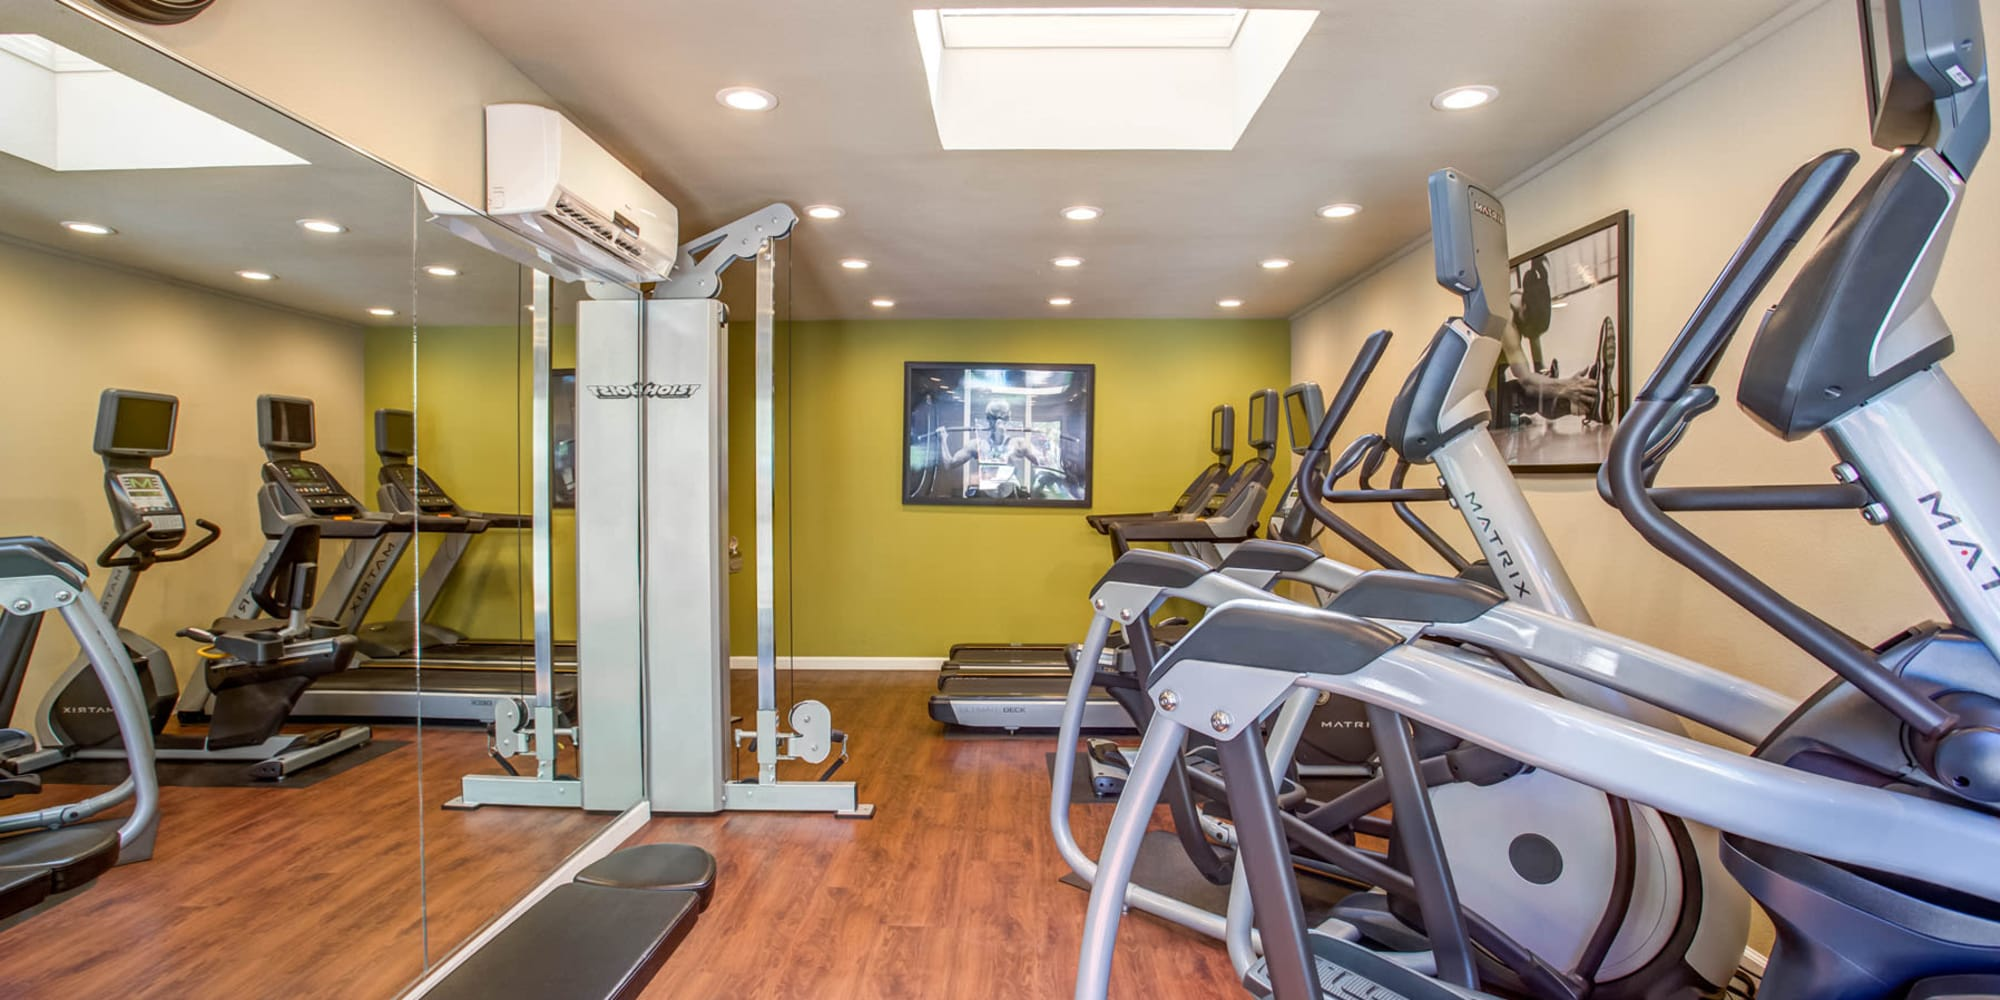 Well-equipped fitness center at Valley Plaza Villages in Pleasanton, California